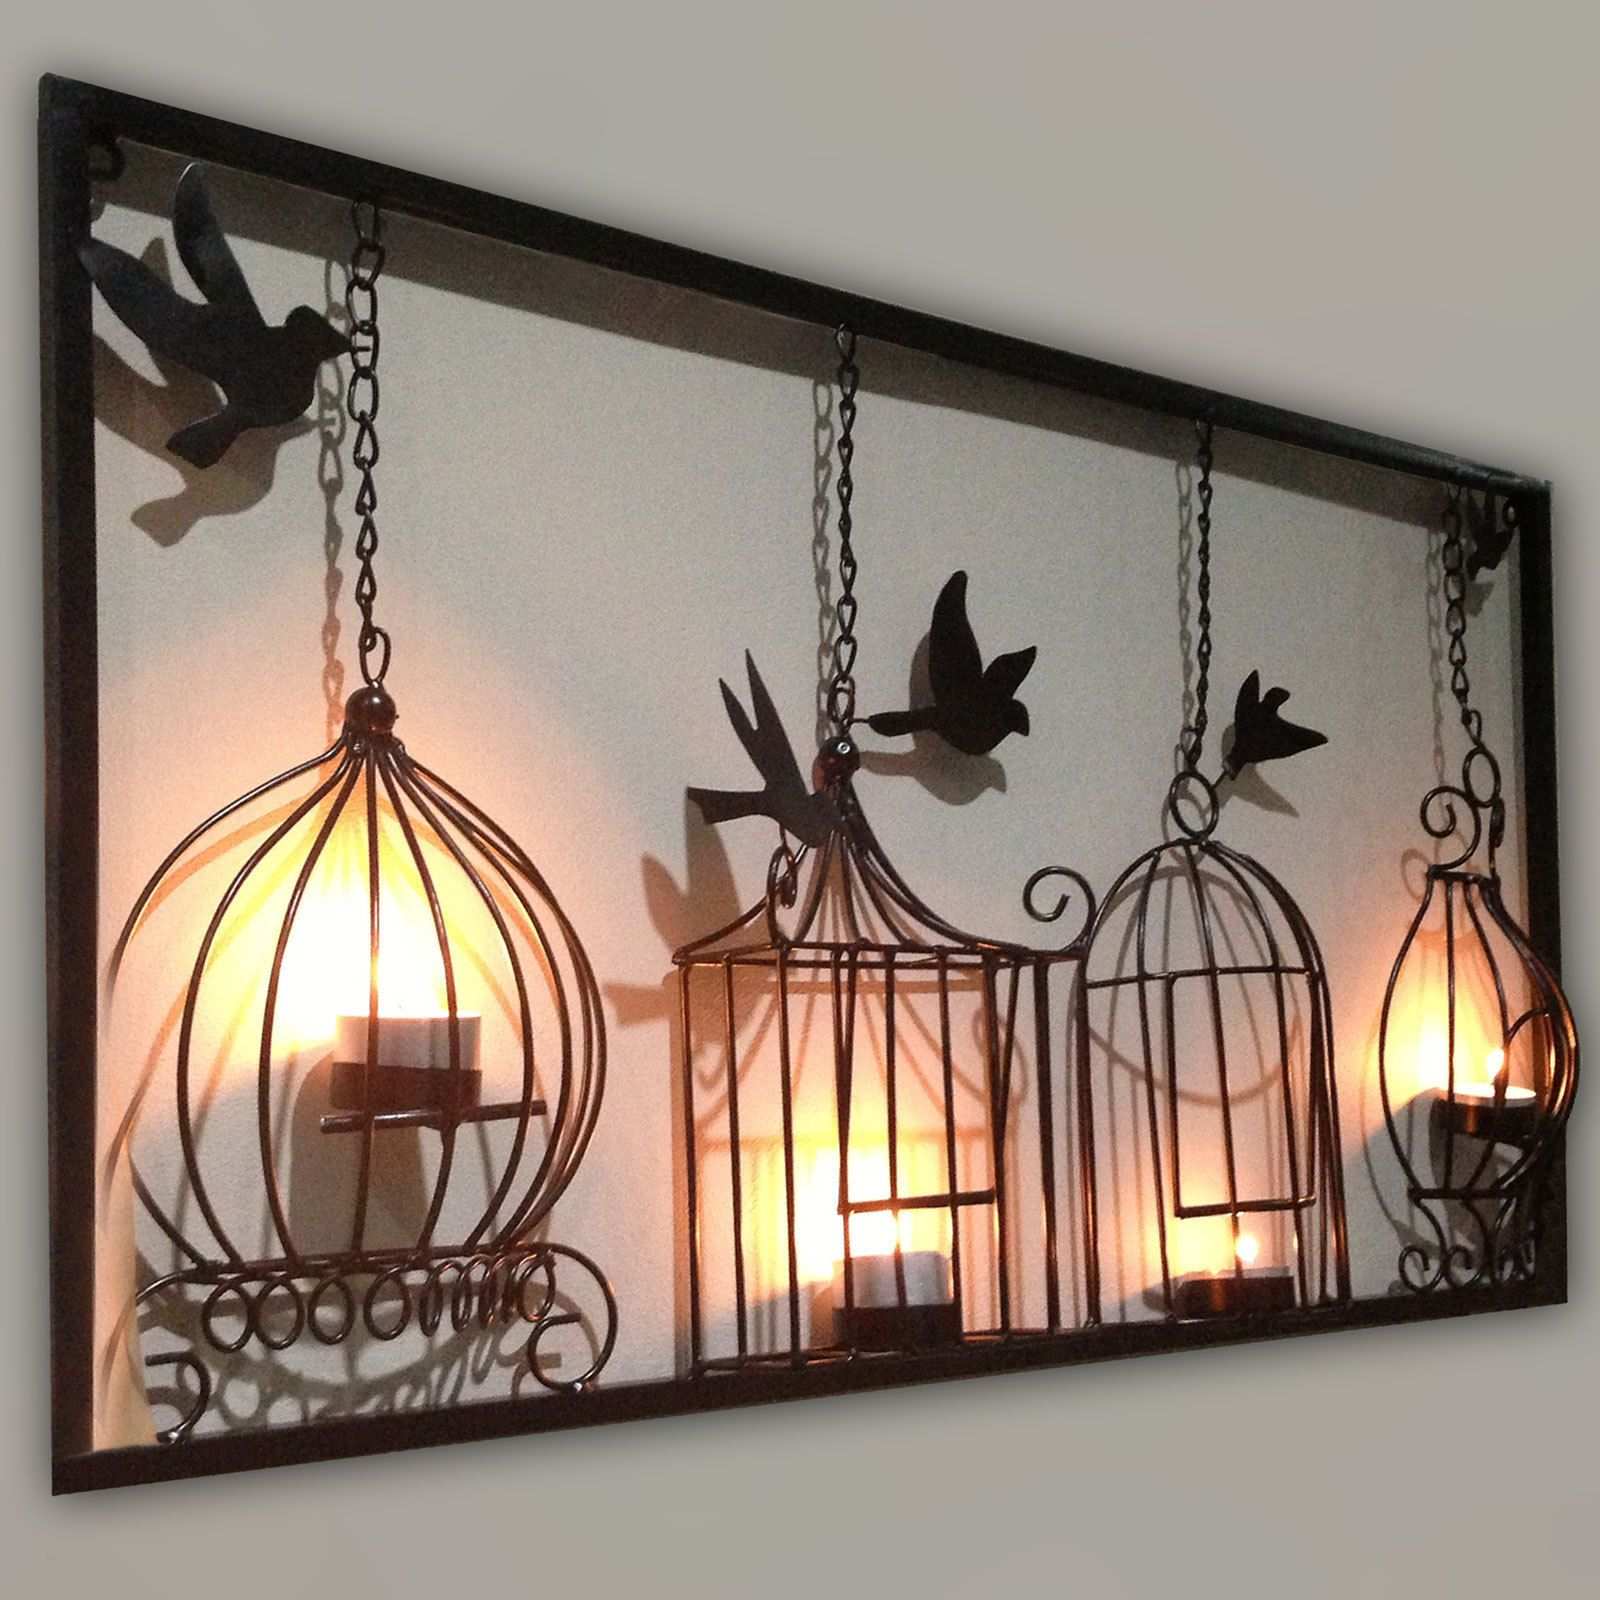 Birdcage tea light wall art metal wall hanging candle holder black that features a range of bird cages in each bird cage has its own unique appeal with hanging chain and integrated candle holder birdcage tealight arubaitofo Gallery